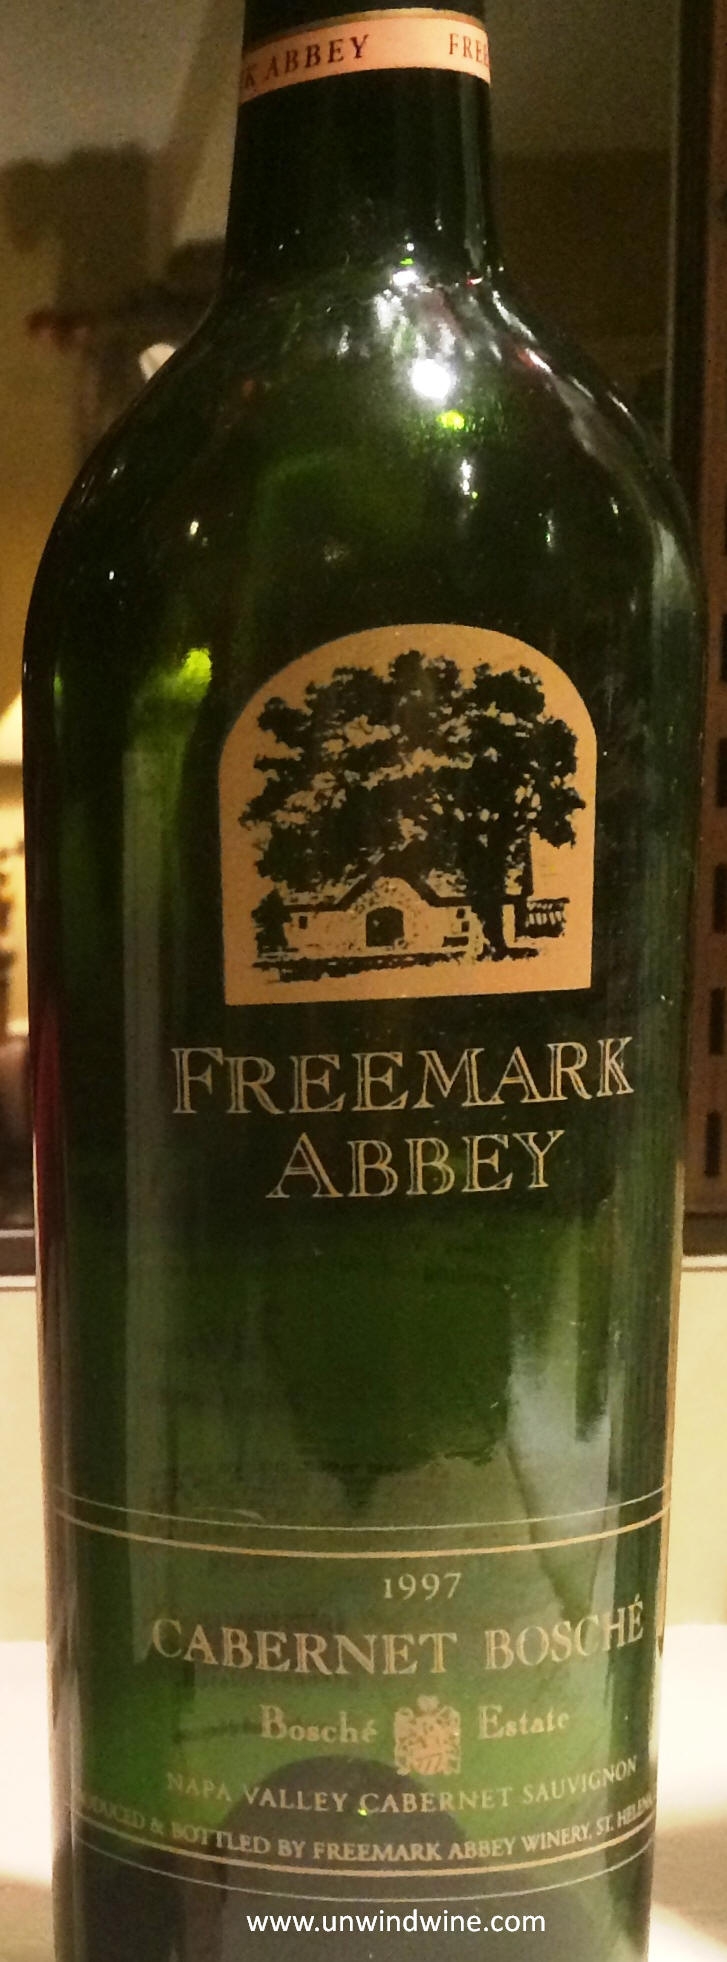 freemark abbey winery essay Ase analysis freemark abbey winery(qunatitative biz analysis) case analysis to cover executive summary of the case decision problemin the form of a statement decision tree analysis of the industry and the company possible decision alternatives evaluation of alternatives both qualitative and quantitative recommendations 2 pages of appendices in analysis note evaluation of alternatives will cary.